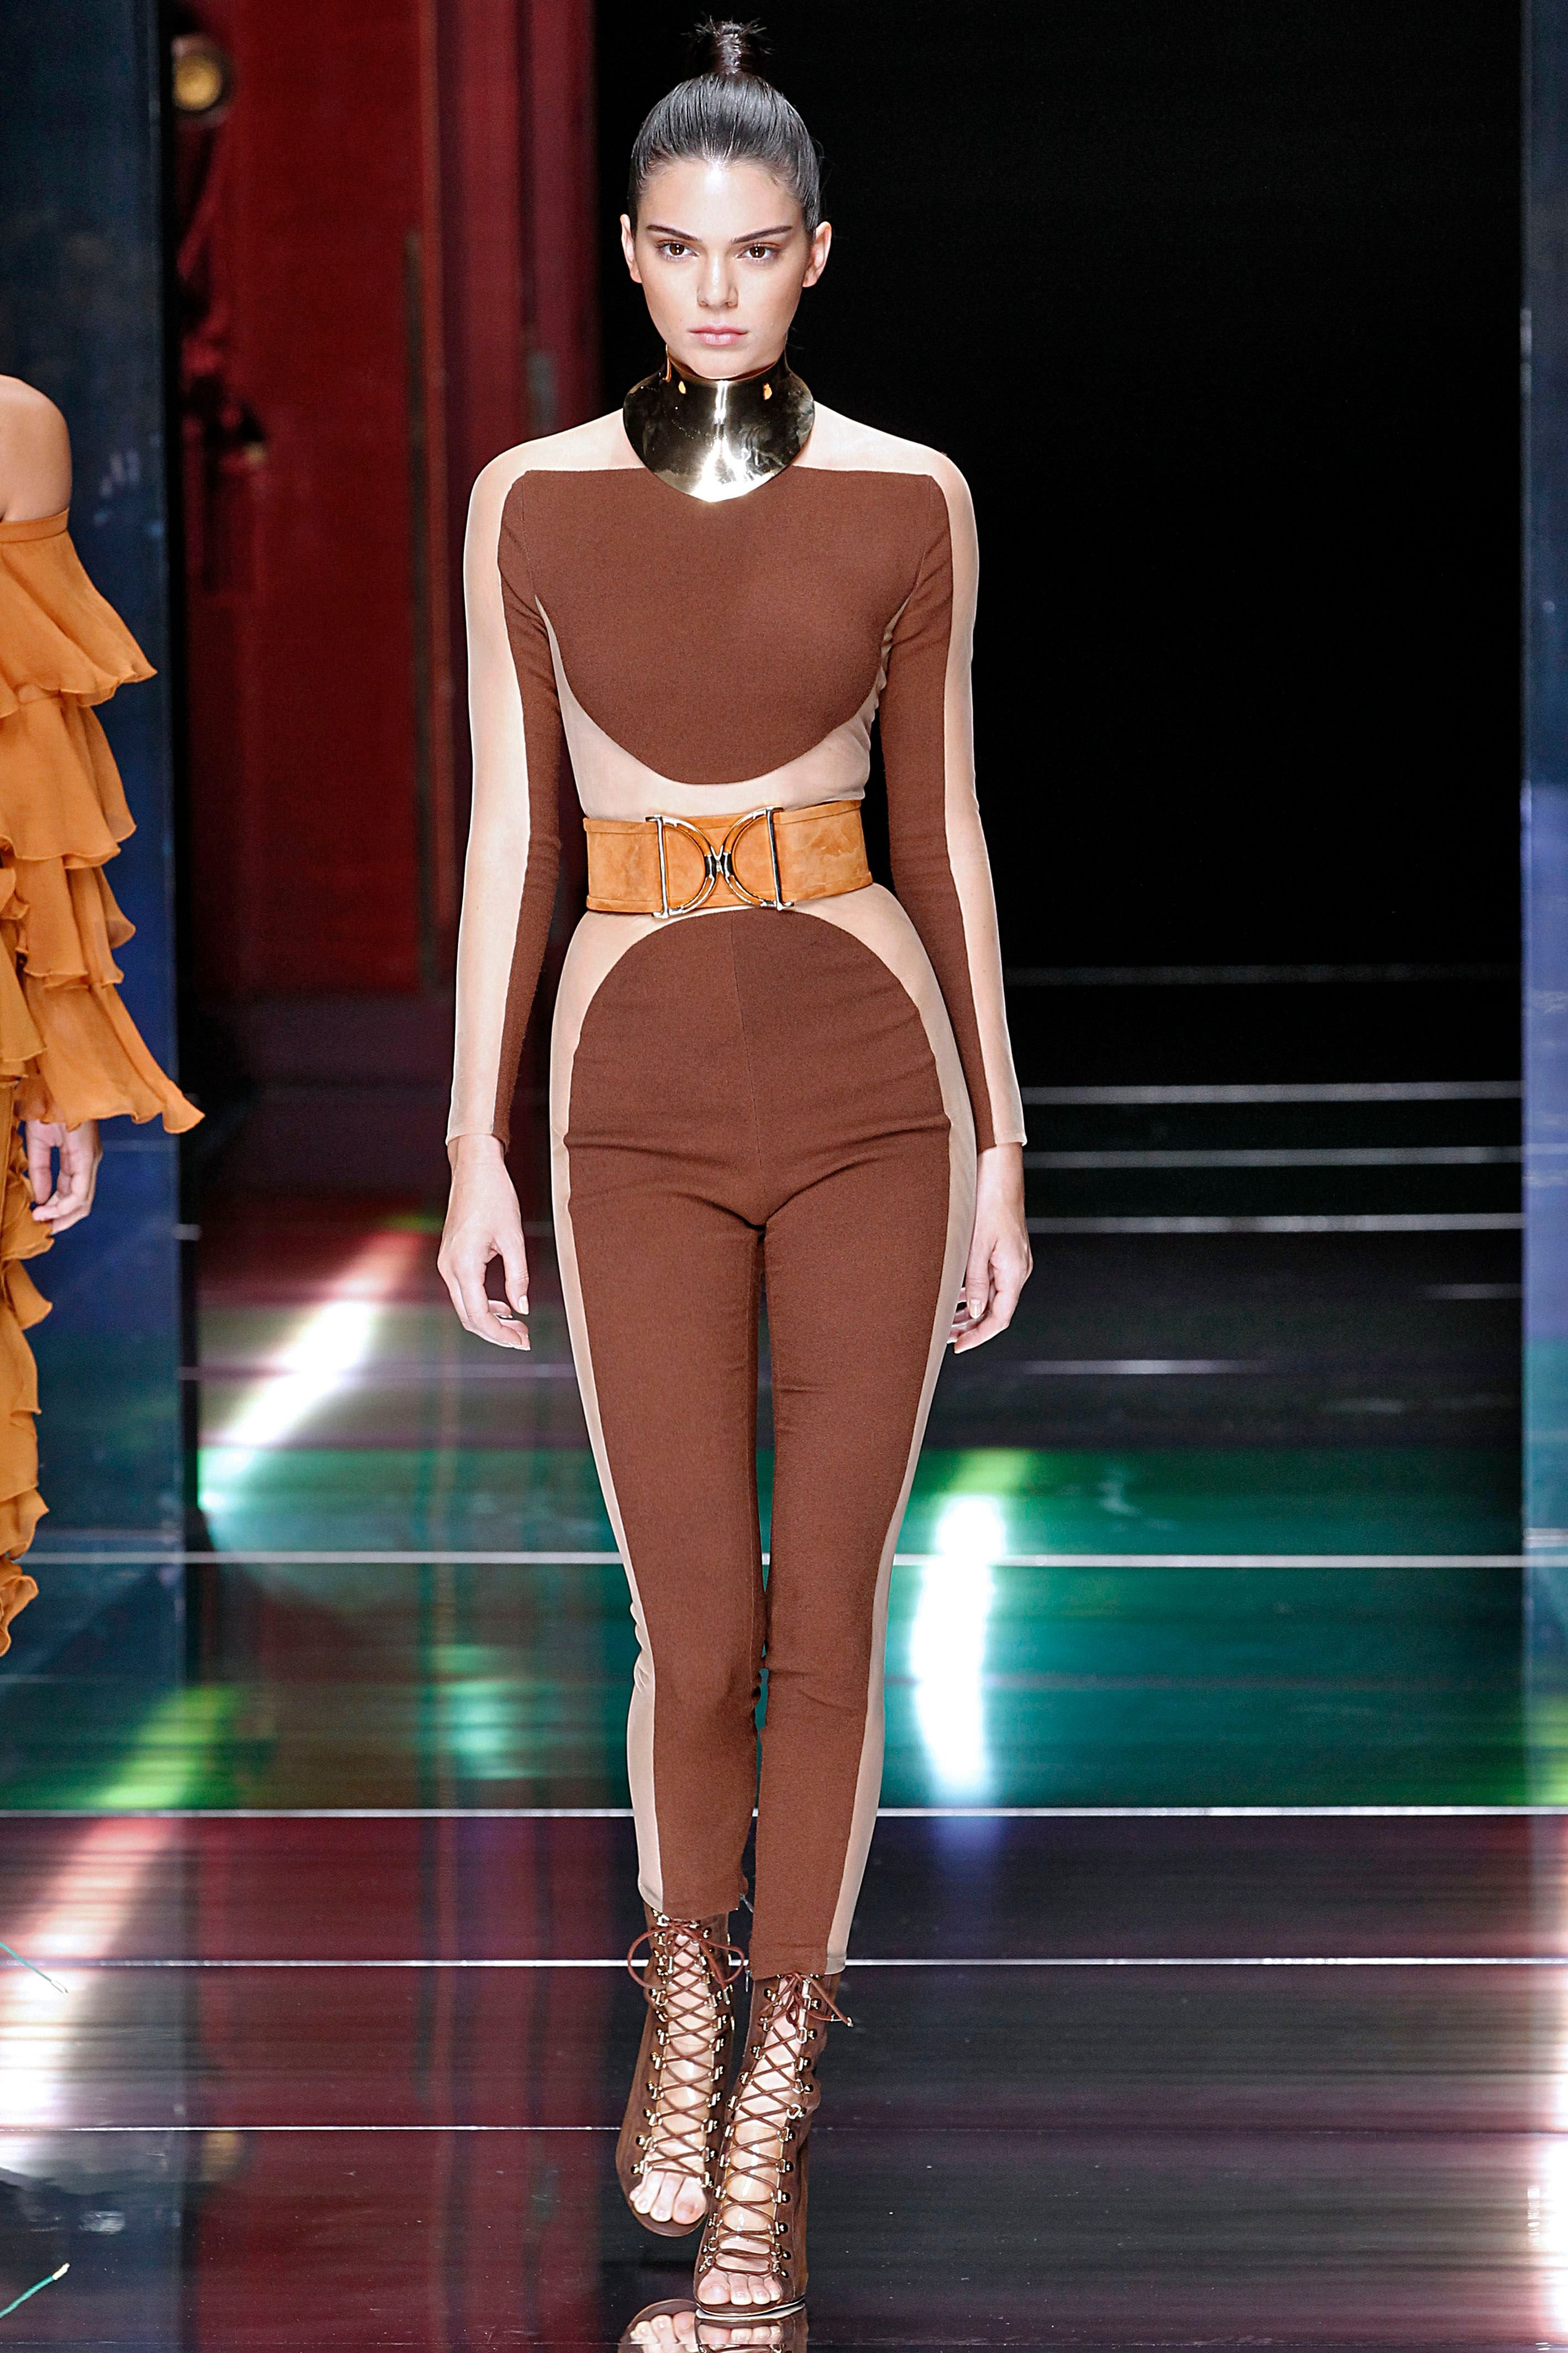 Kendall Jenner walks the runway during the Balmain Ready to Wear show as part of the Paris Fashion Week / Getty Images